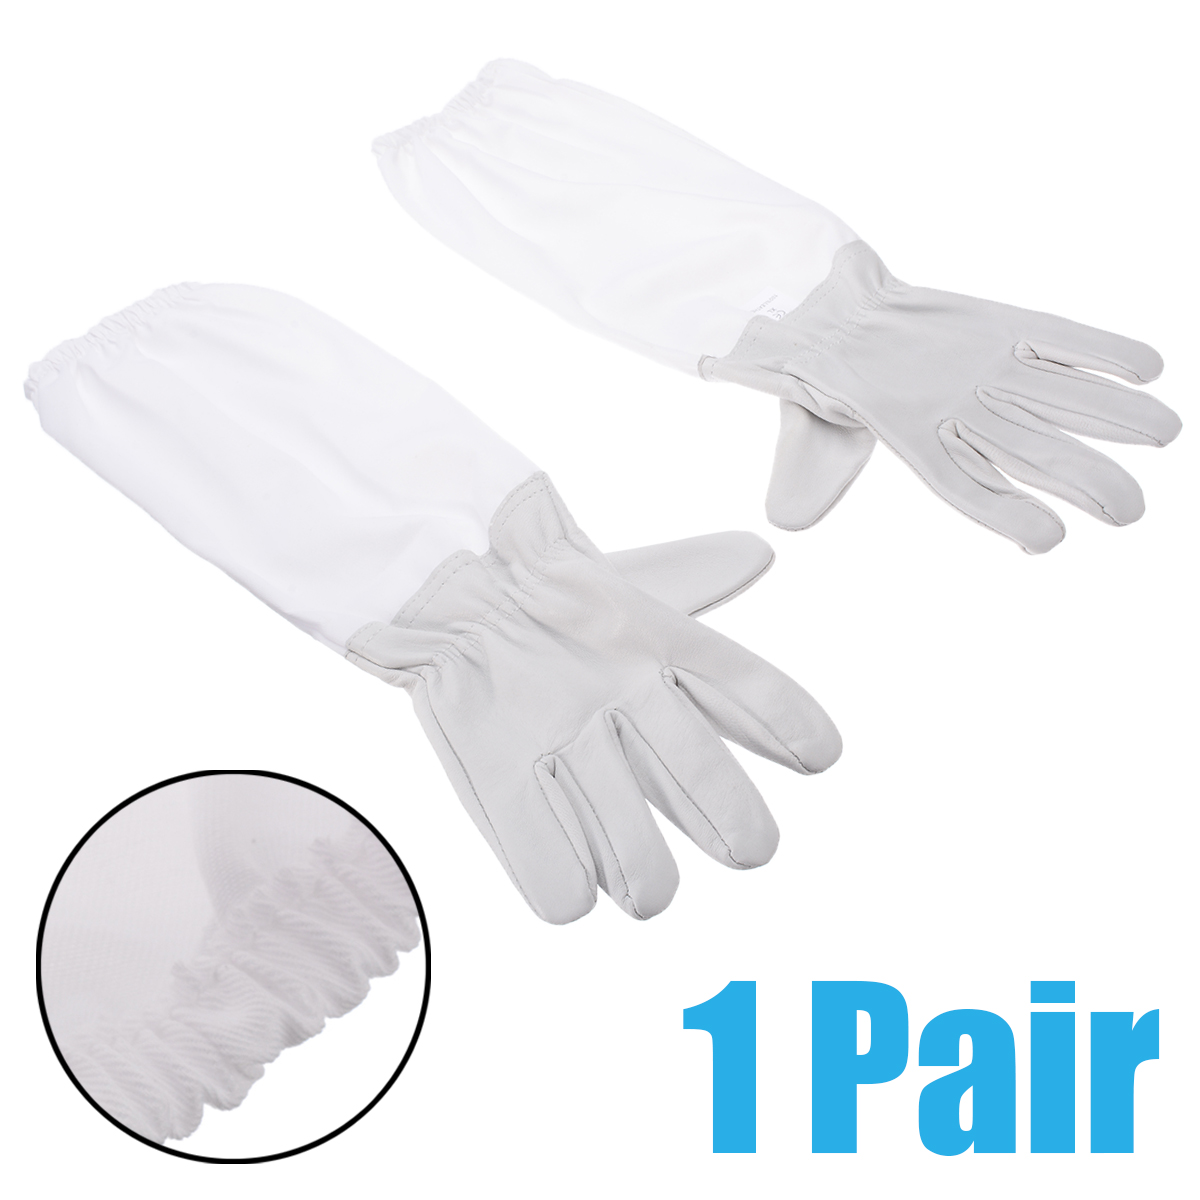 1 Pair Of XL Large Beekeeping Gloves White Goatskin With Vented Beekeeper Long Sleeves Mayitr Protective Anti Bee Garden Gloves